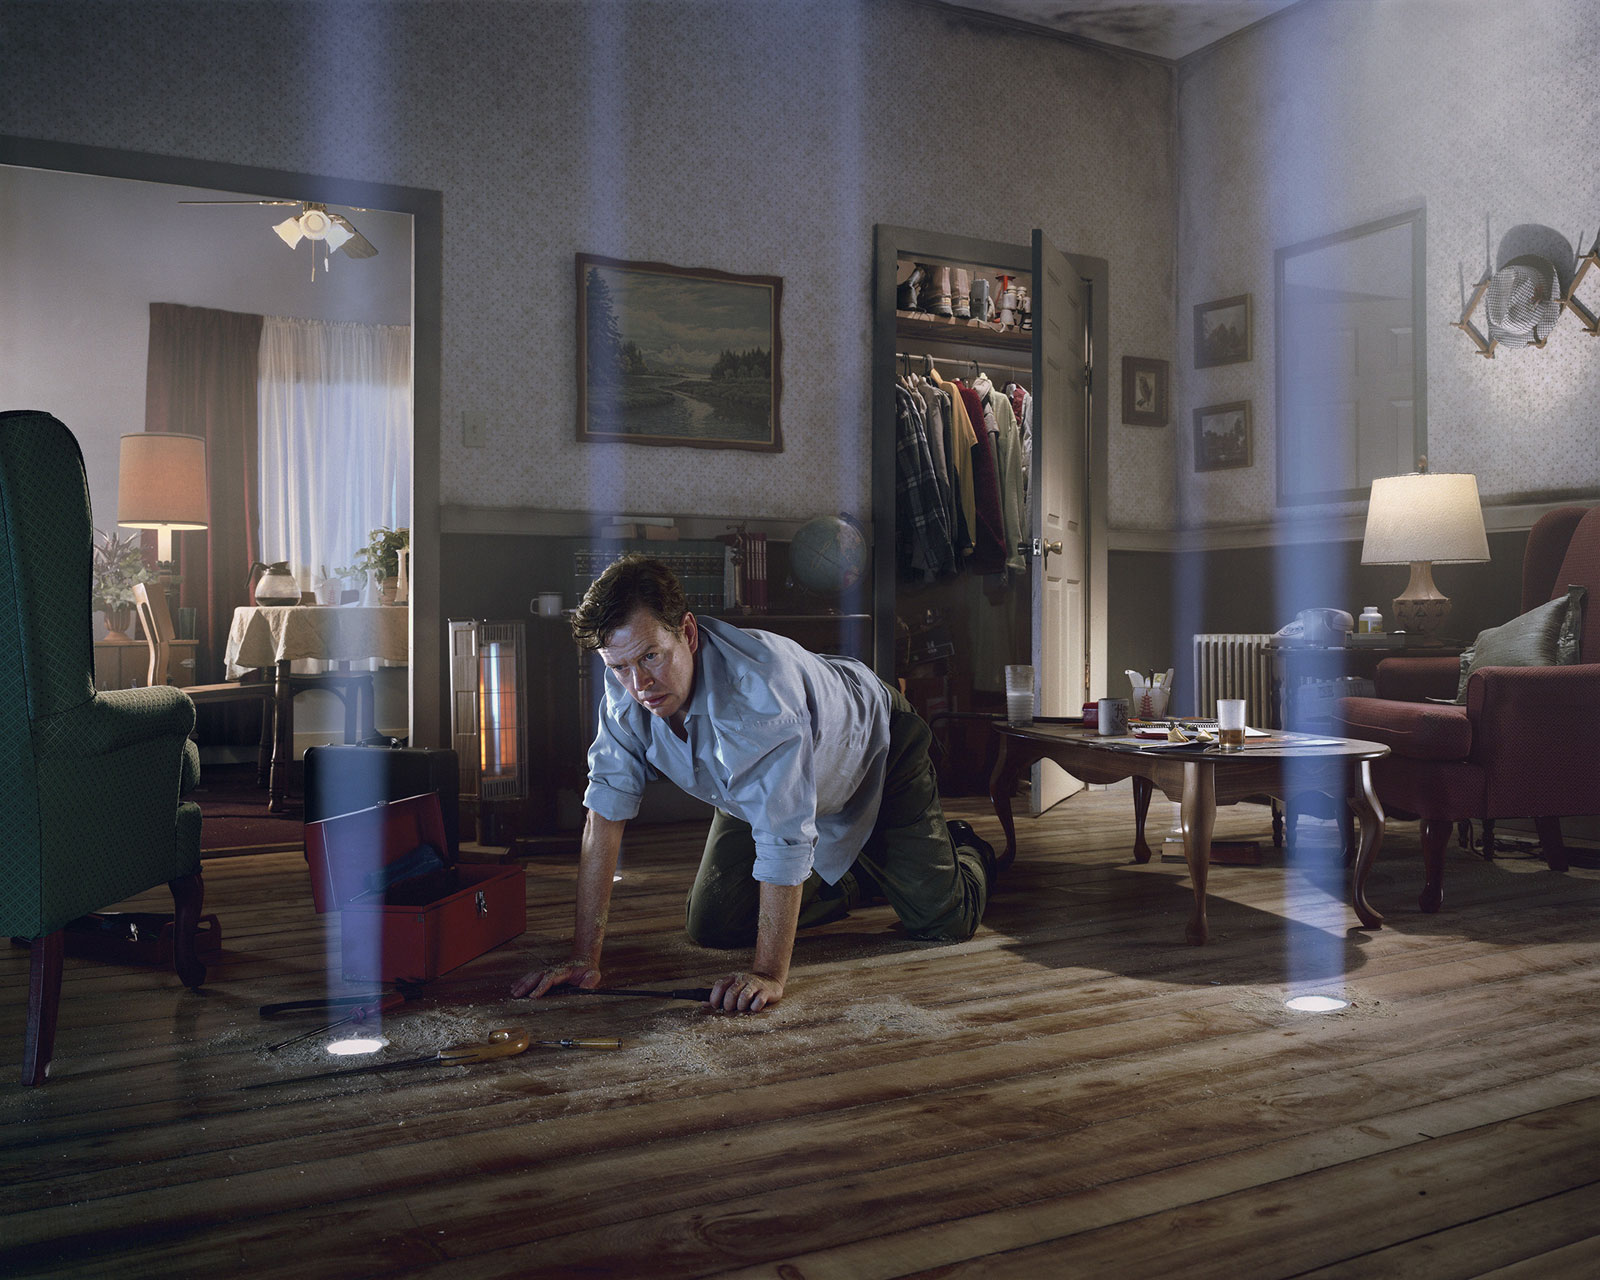 gregory-crewdson-untitled-dylan-on-the-floor-from-twilight-series-web.jpg